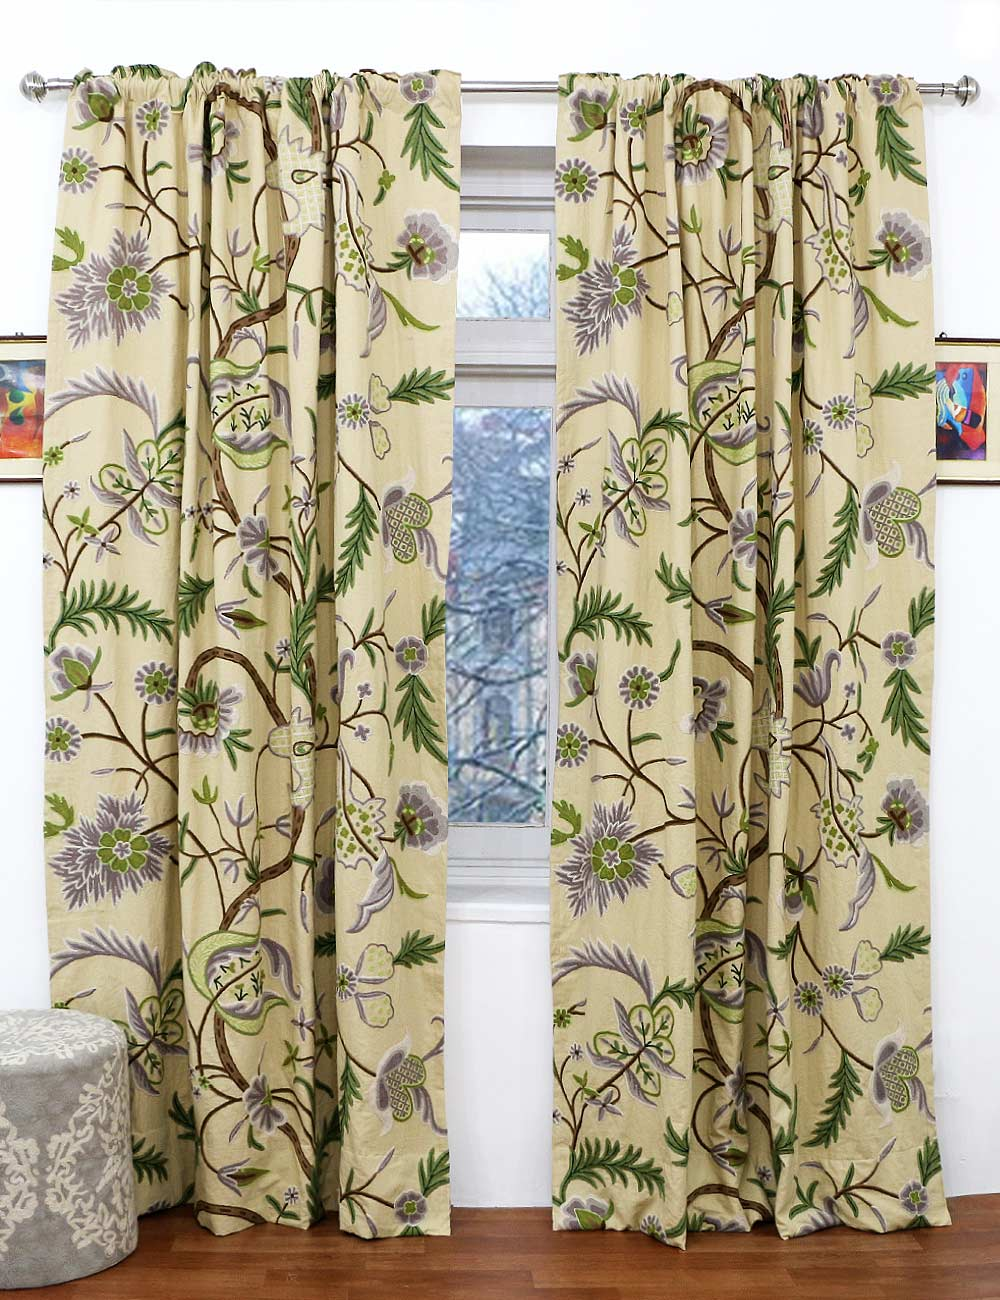 Woodmark crewel curtain panels and drapes hand embroidered